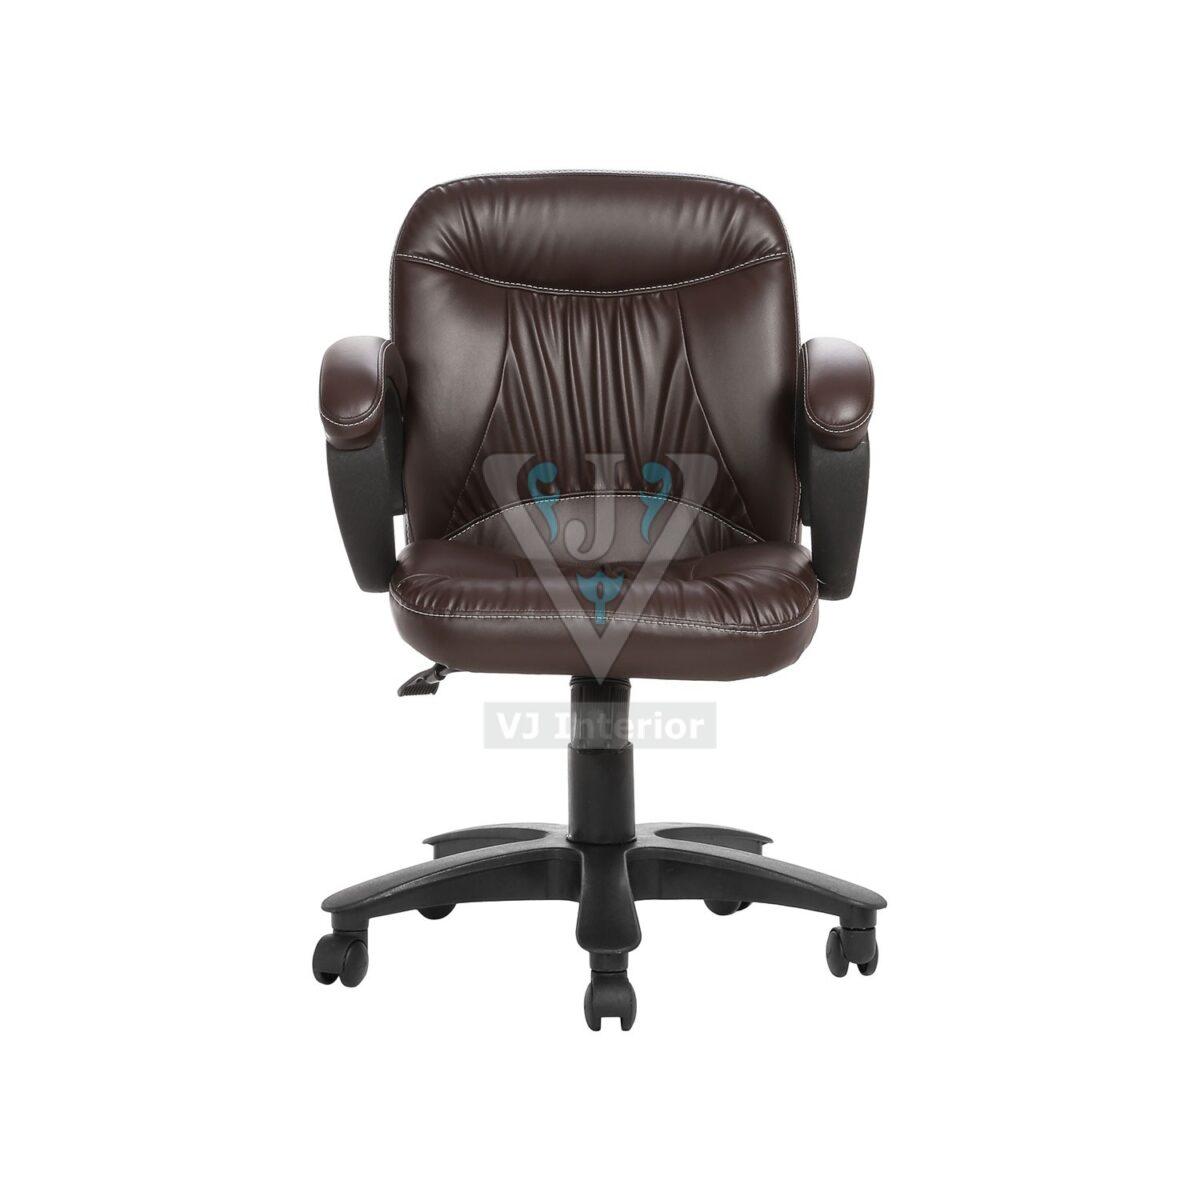 THE DELANTAL WORKSTAION CHAIR BROWN